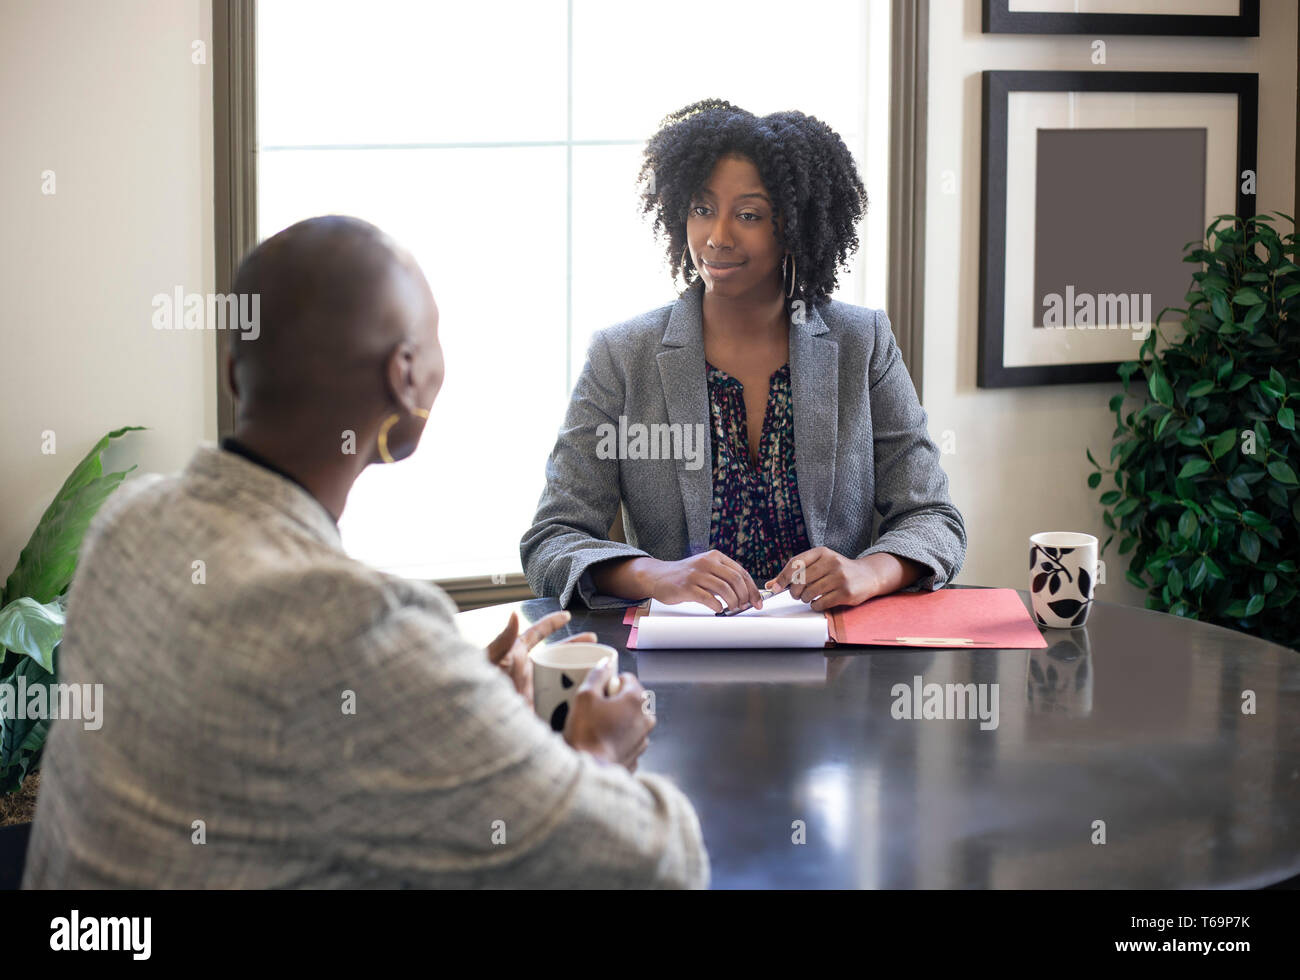 Black African American female businesswomen talking in an office.  The two women looks like a start up co workers or small business partners. - Stock Image